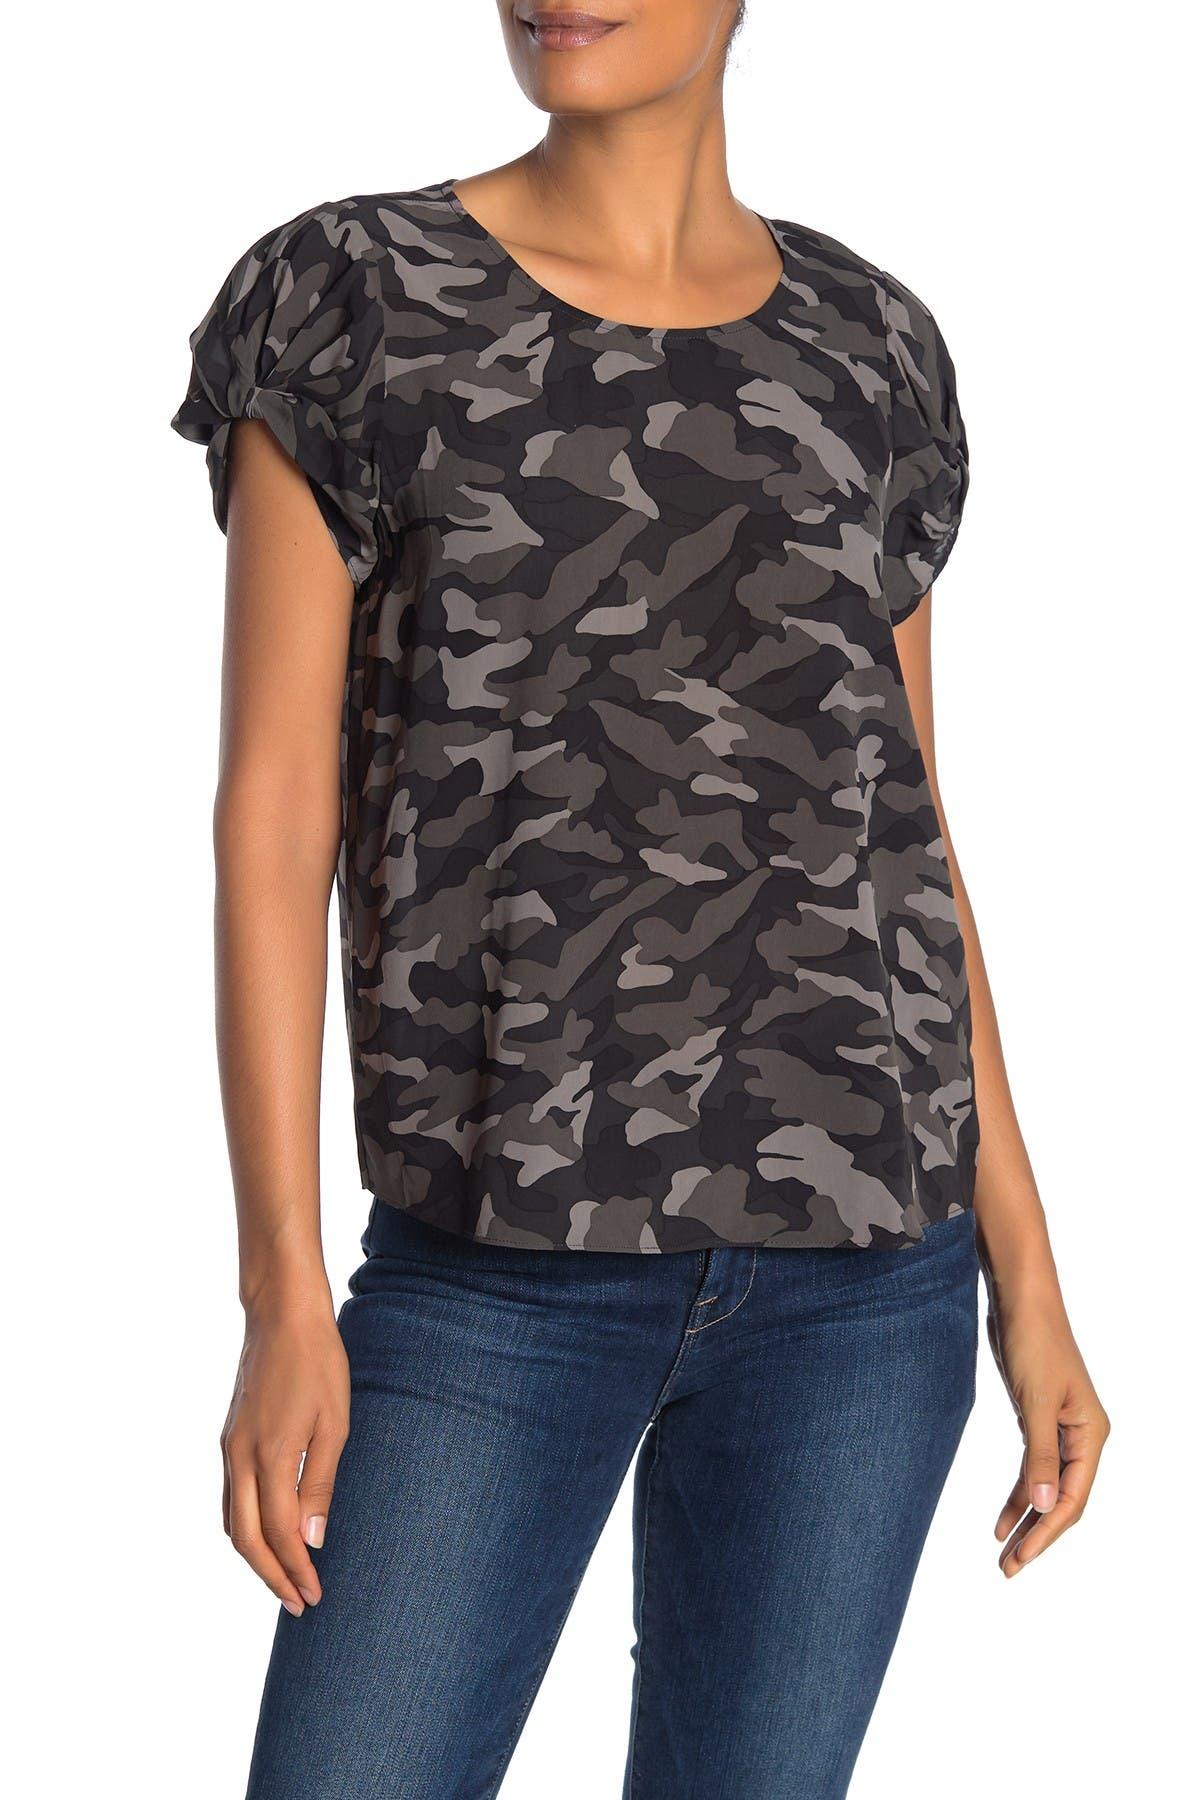 Image of Joie Elline Camo Printed Blouse